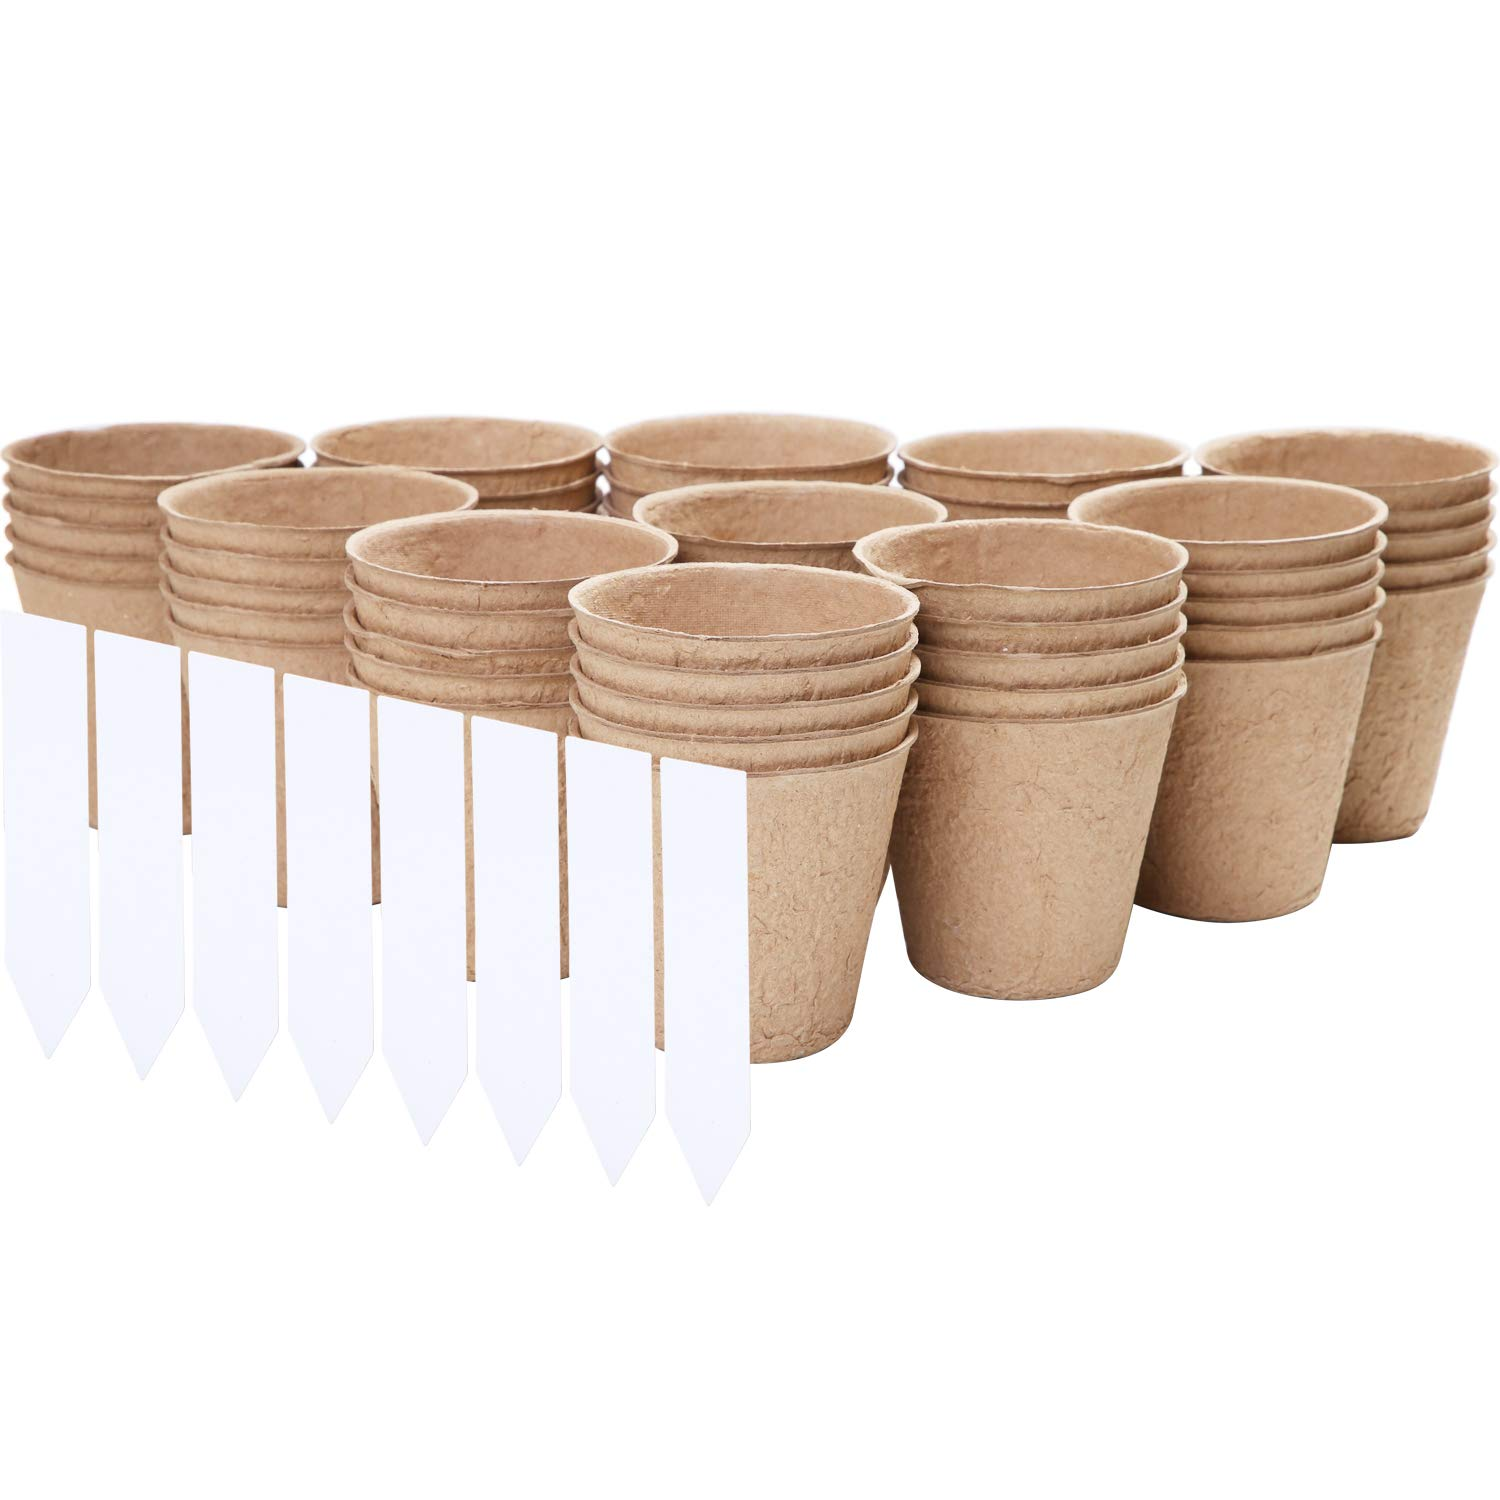 URATOT 100 Pieces Peat Pots Seed Starter Eco-Friendly Enhance Aeration with Plant Tags for Home Plant Starters